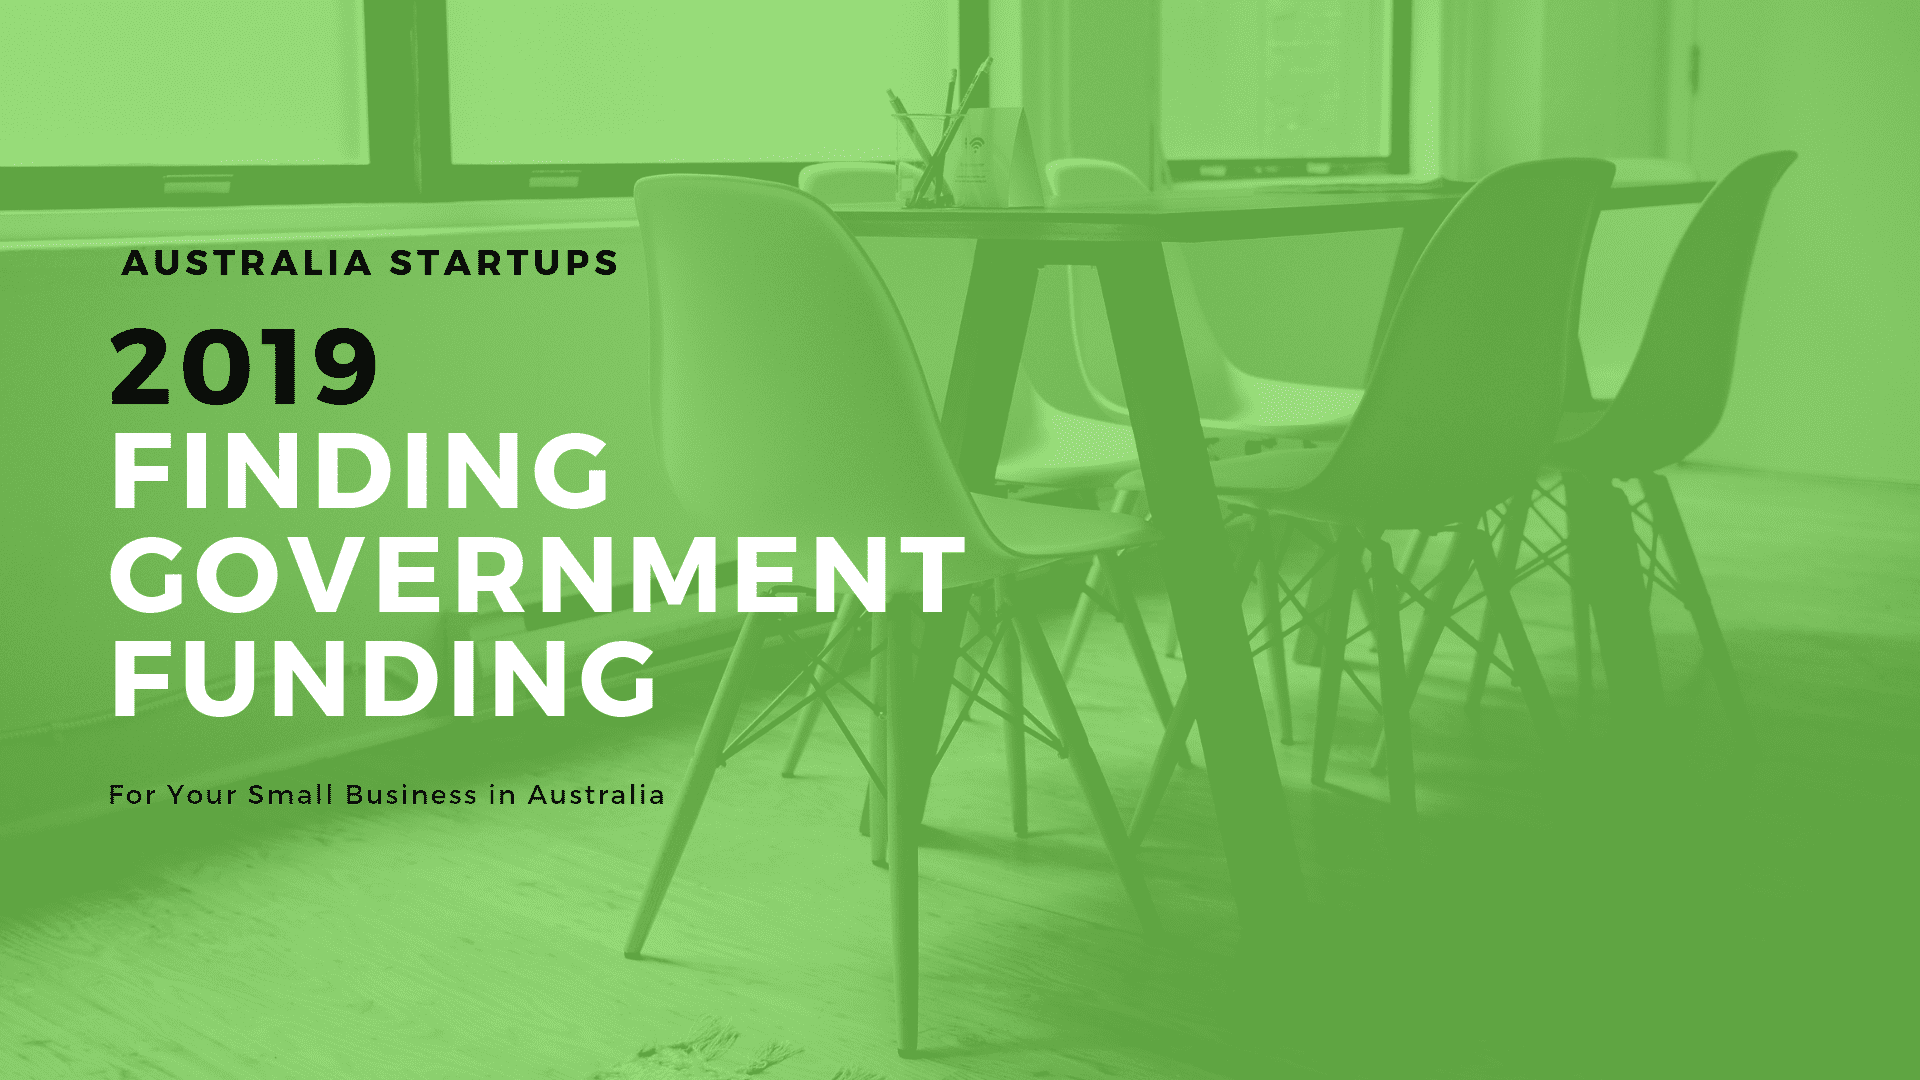 Finding Government Funding in Australia